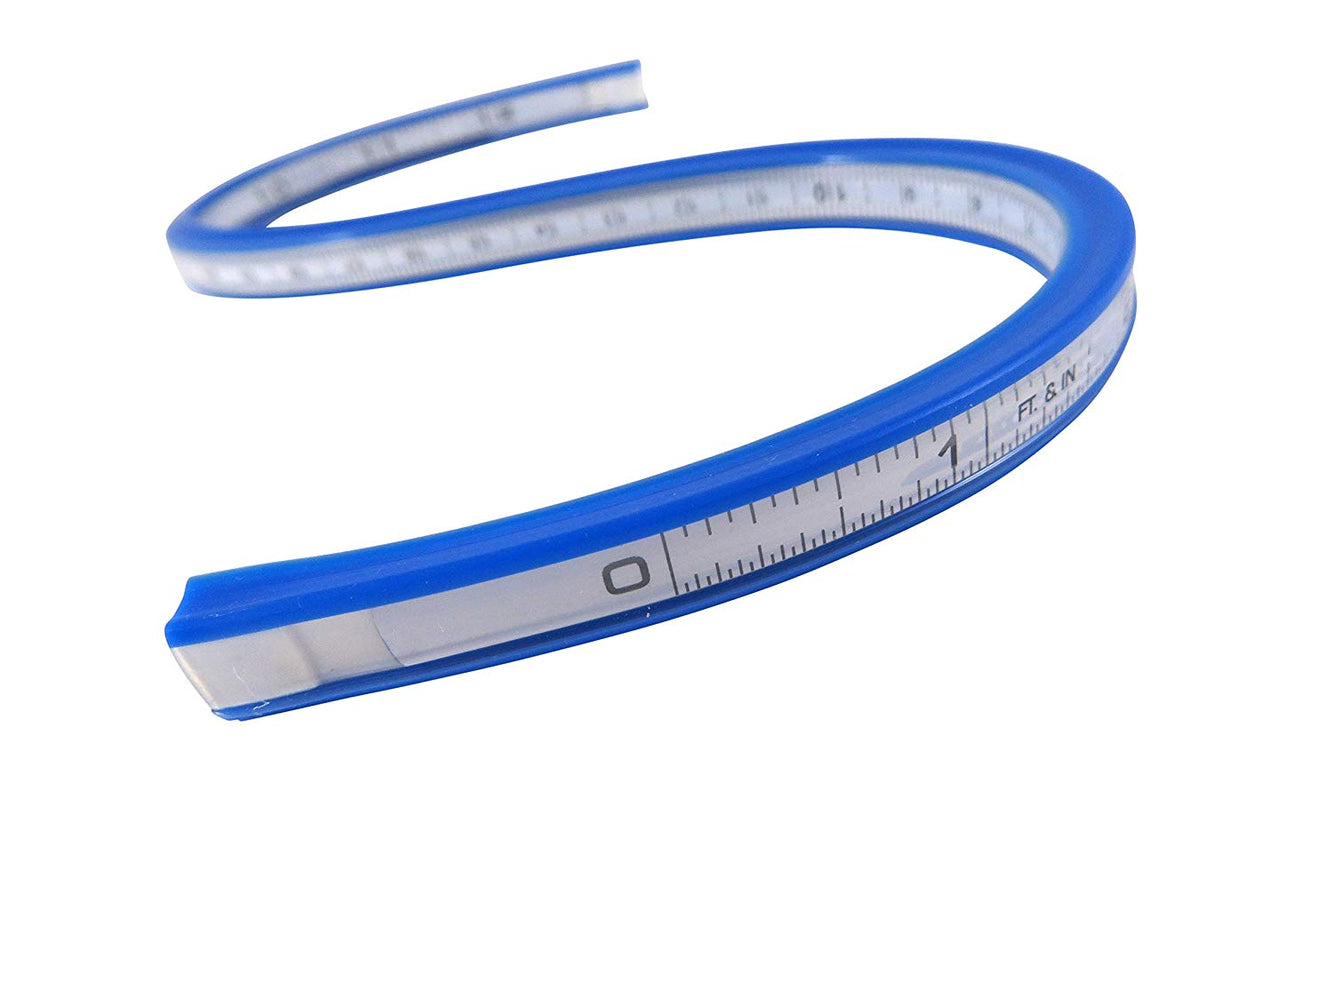 Flexible Curve Rulers Measuring Tape